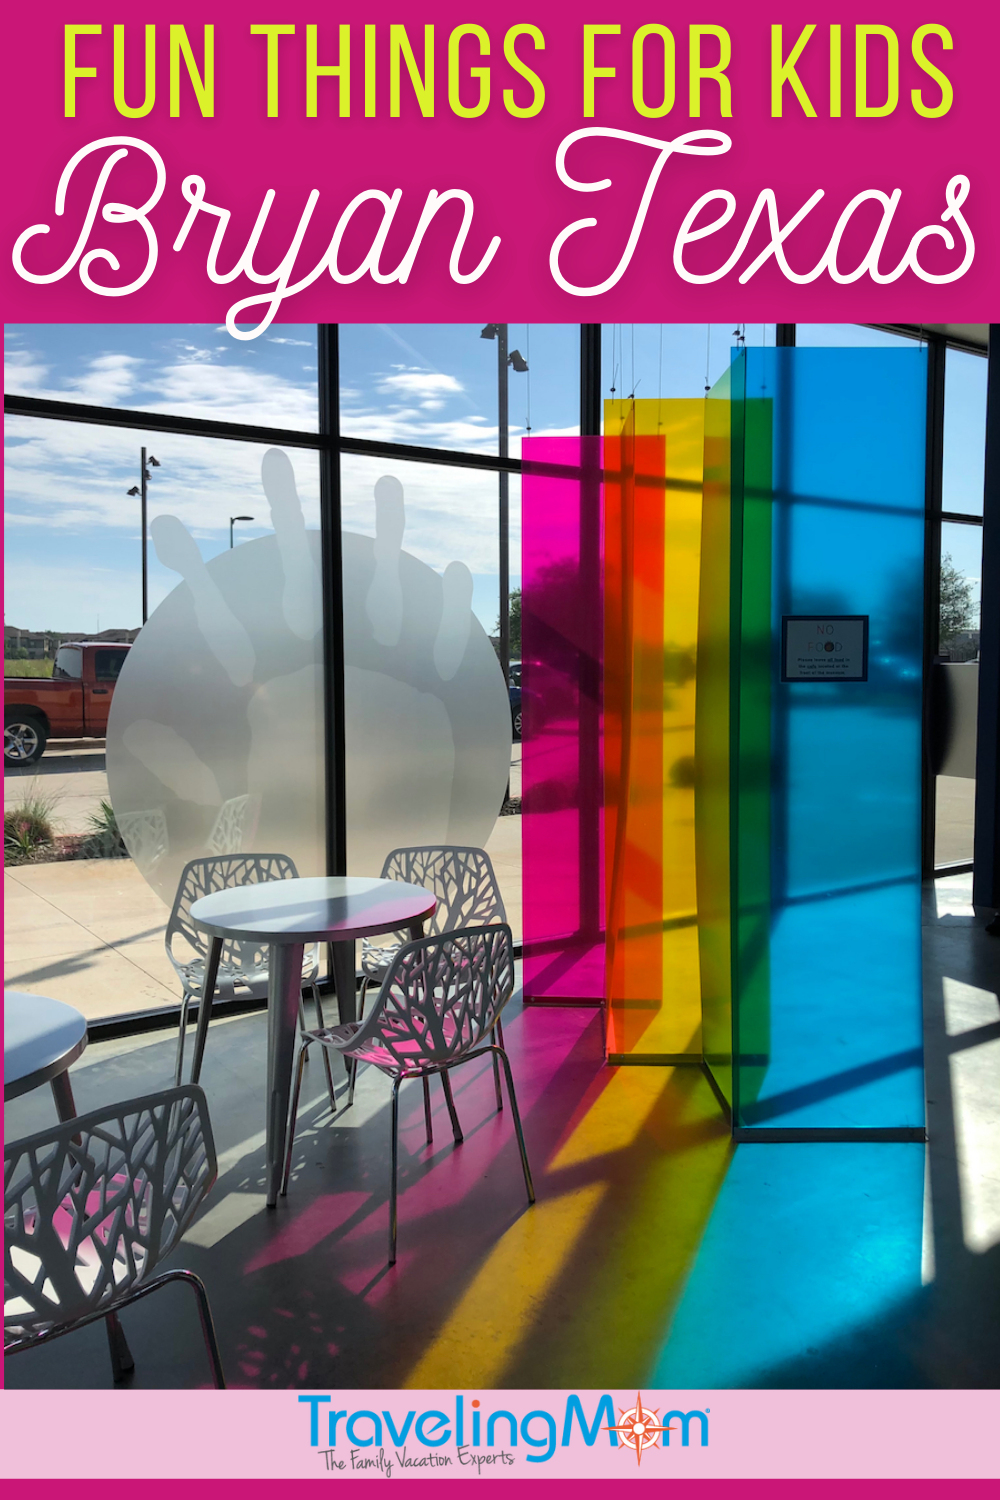 rainbow colored glass windows with text reading fun things for kids in bryan texas